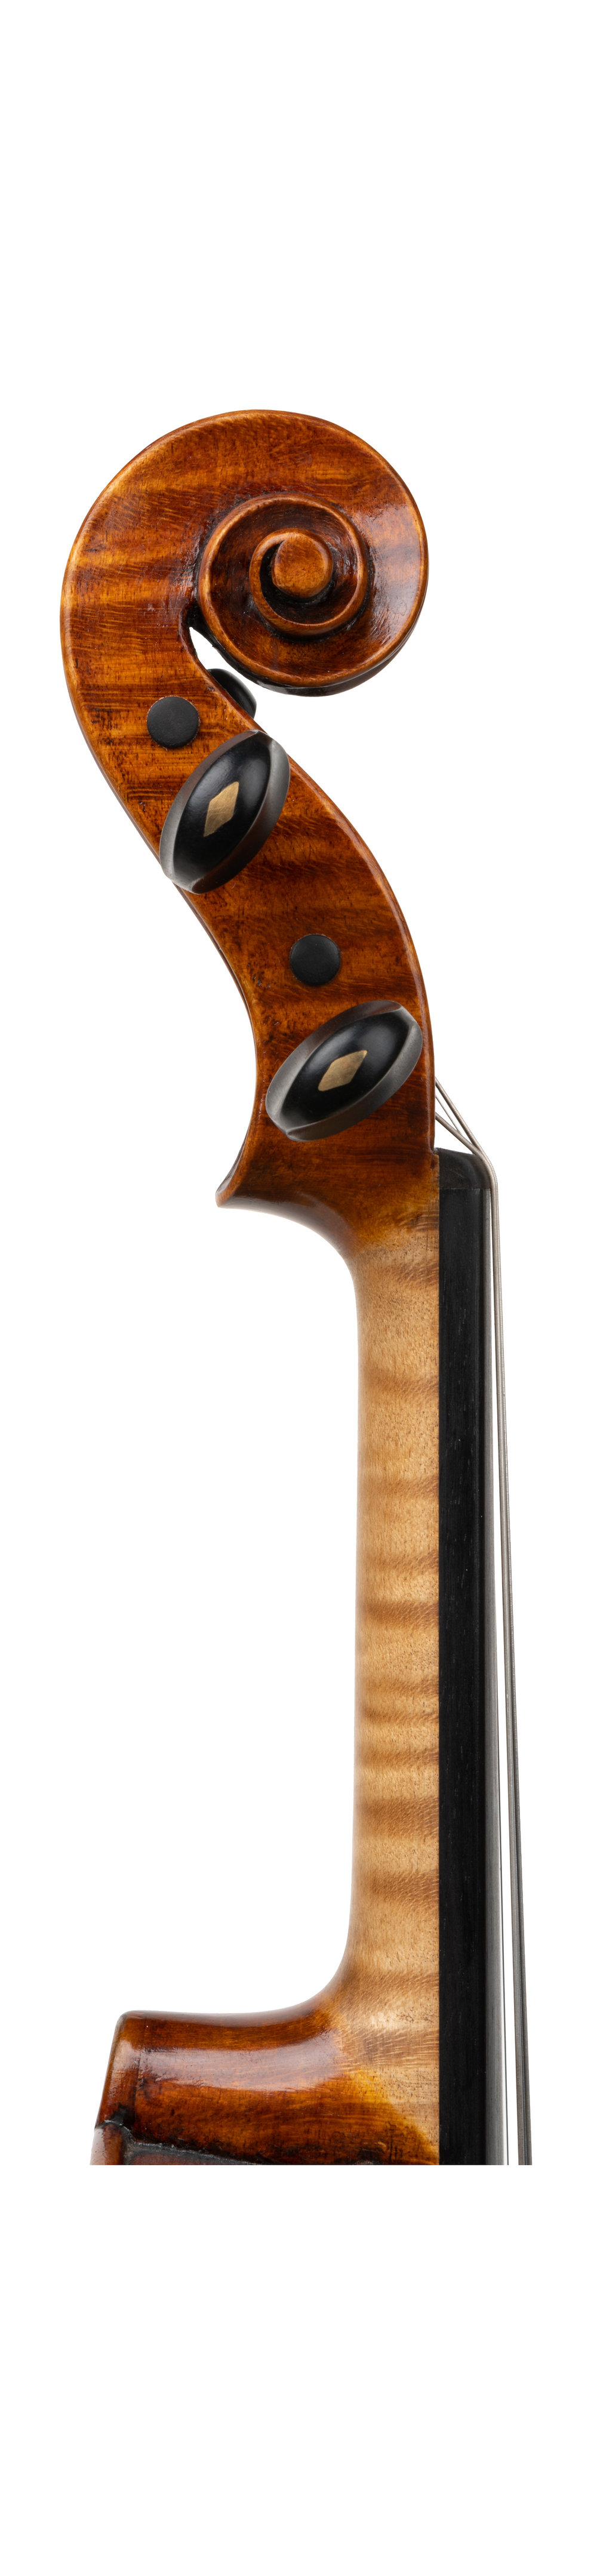 German violin labeled Jacob Stainer scroll.jpg